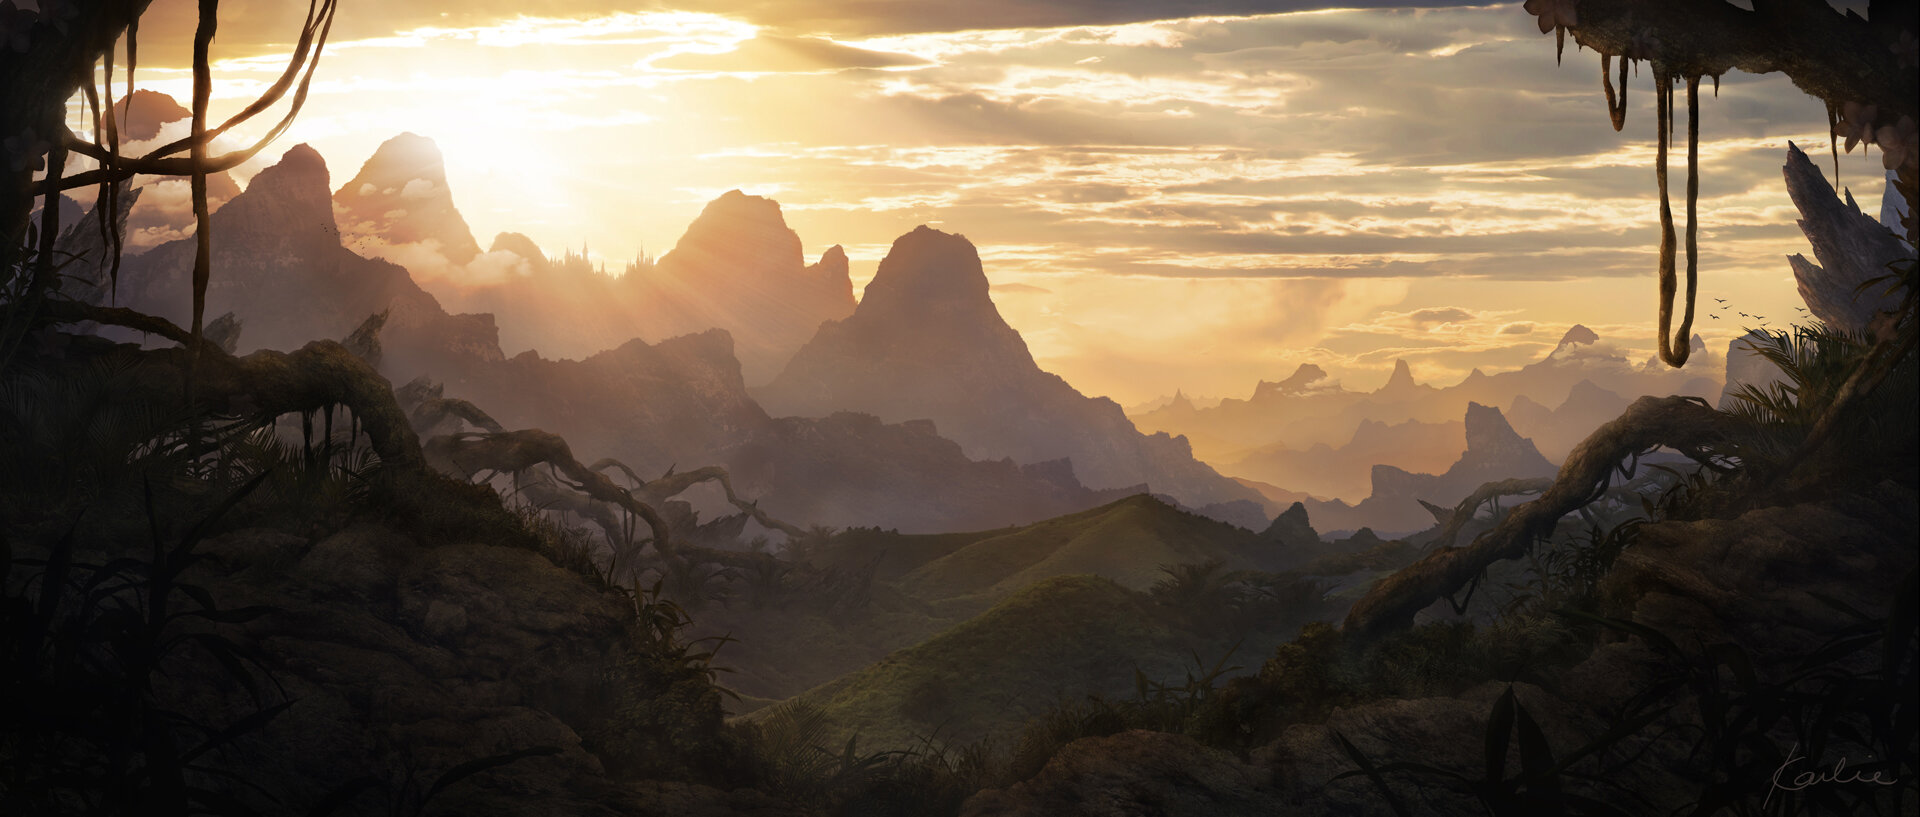 Valley of Kalhu Ralu Ruins  : landscape concept art of a valley at sunset by Karlie Carpentier Rosin